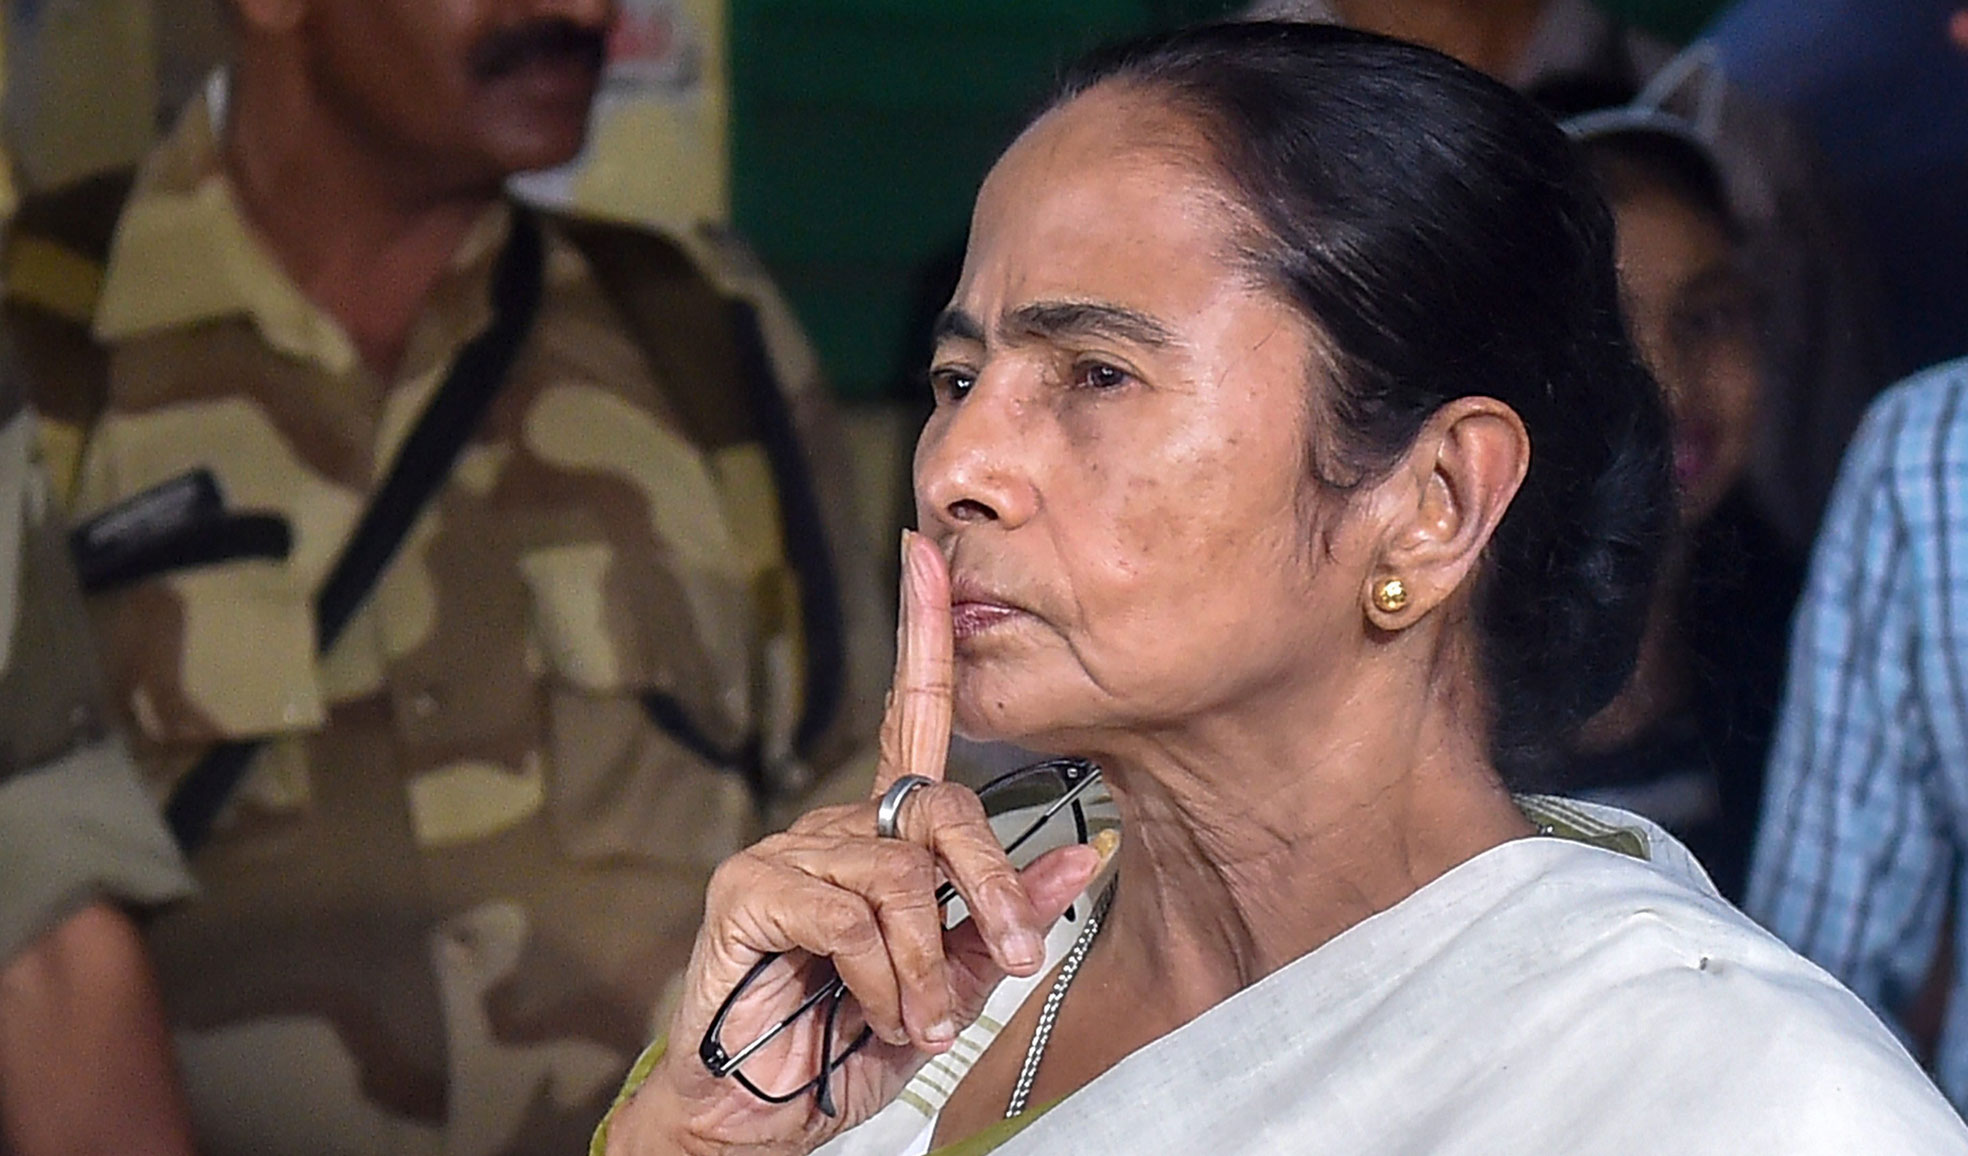 Mamata Banerjee, sources said, is likely to lend a personal touch to the initiative by visiting Birsingha village, now part of West Midnapore, between September 23 and 25.